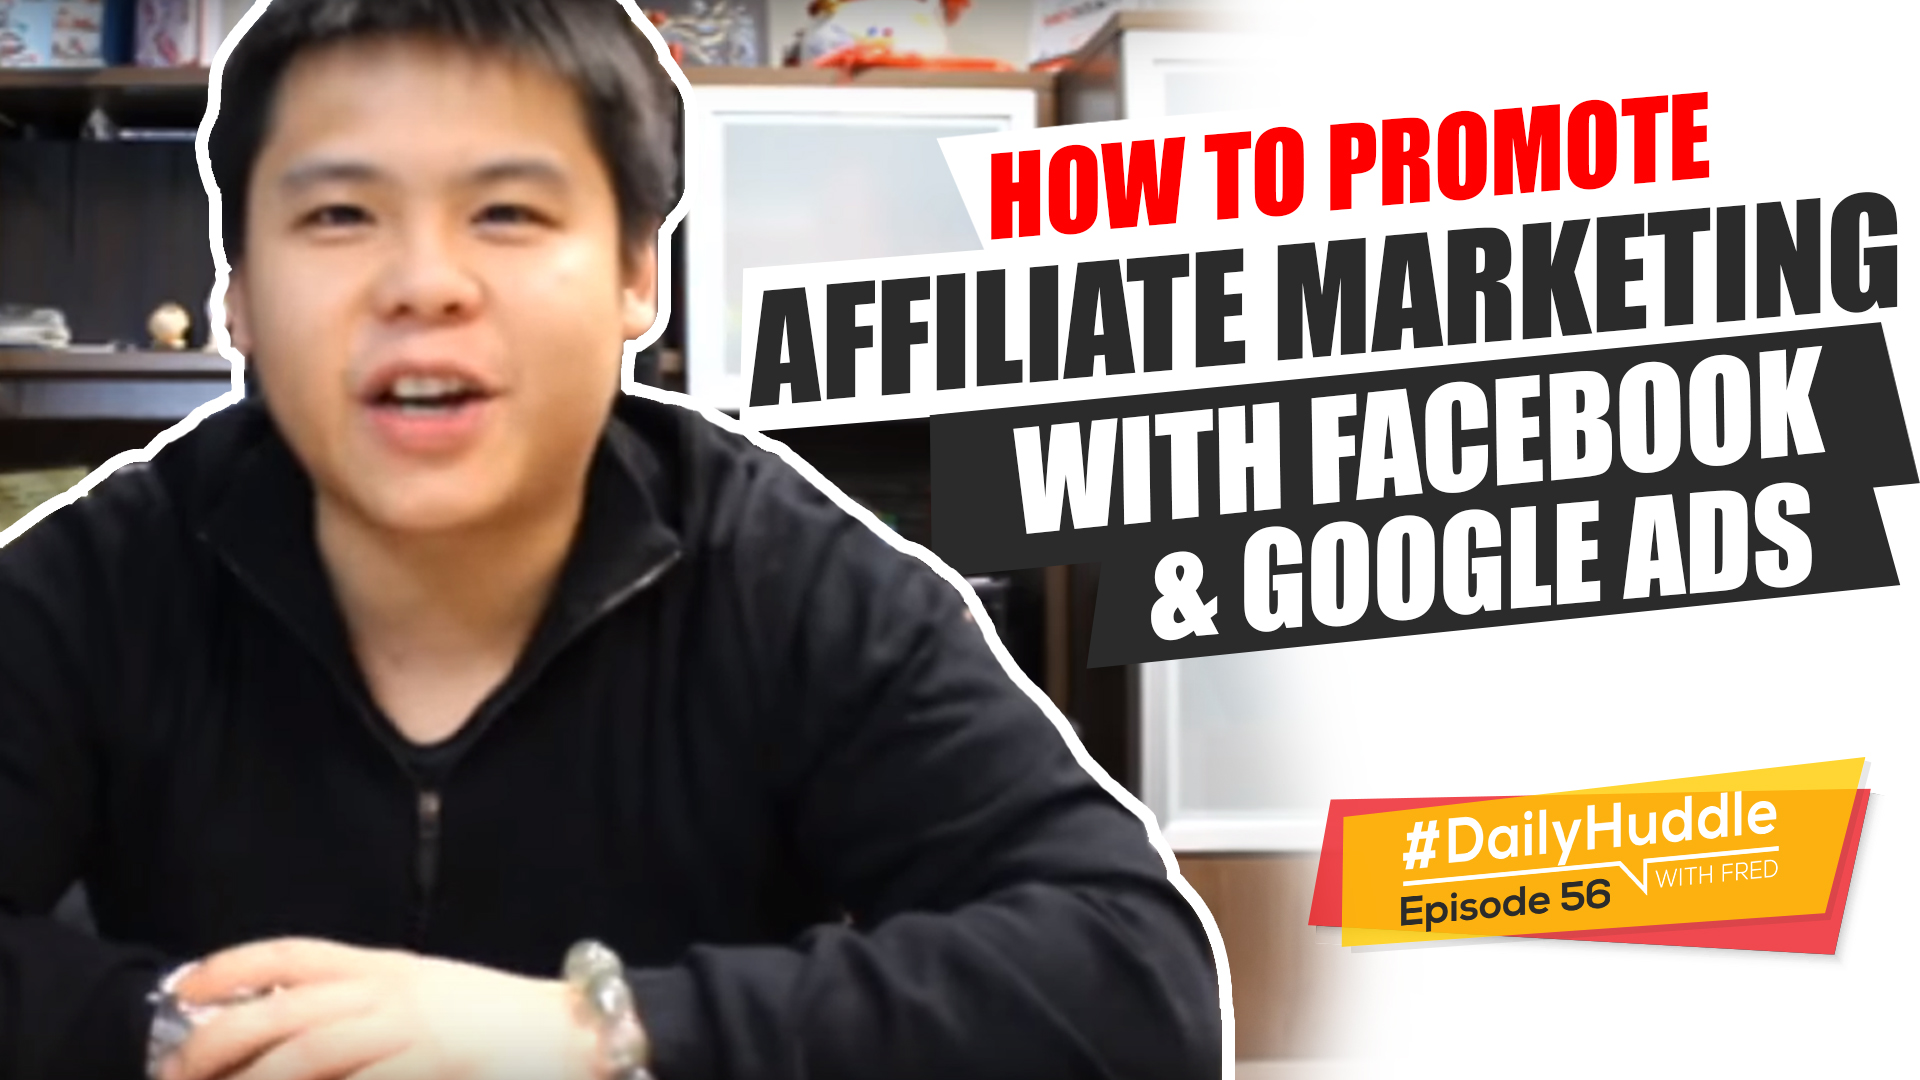 Daily Huddle - Ep 56 | How To Promote Affiliate Marketing With Facebook & Google Ads